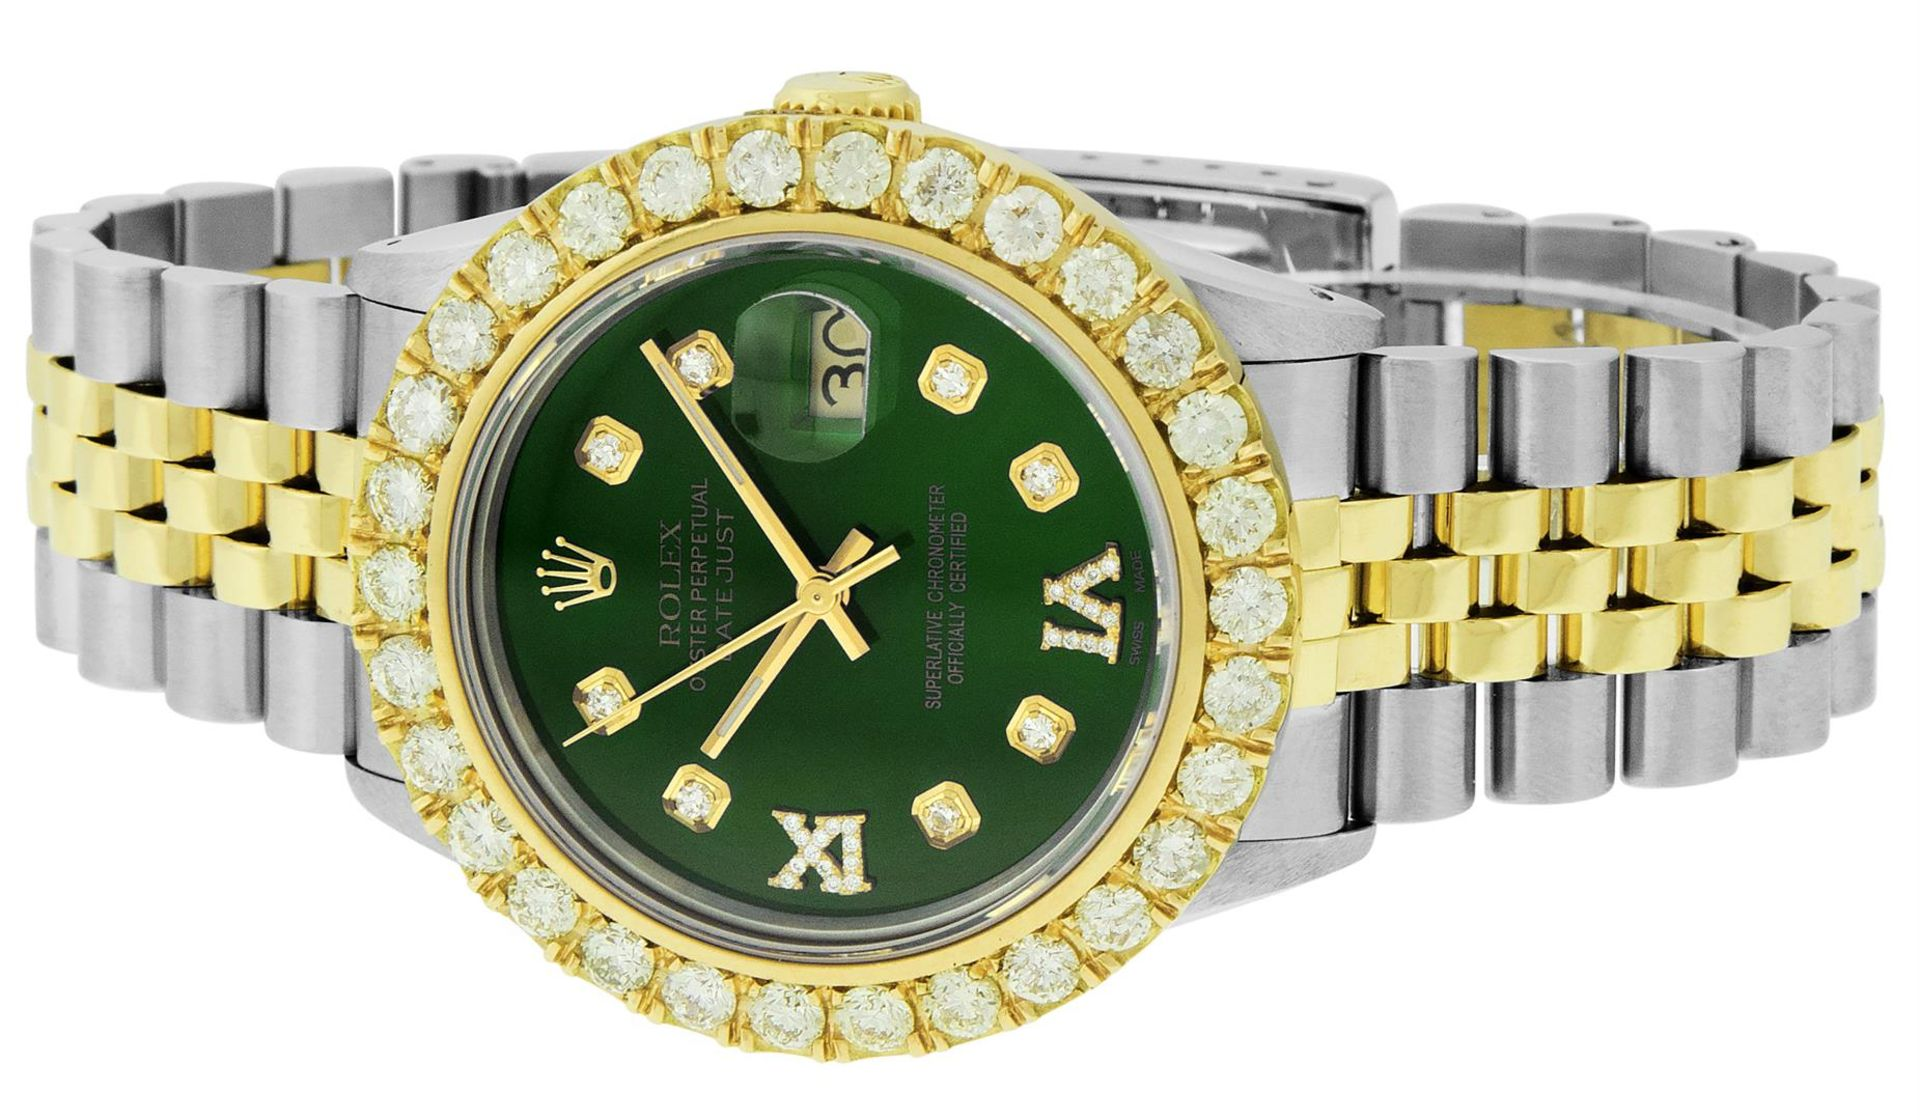 Rolex Mens 2 Tone Green VS 4 ctw Beadset Diamond Datejust Wristwatch with Rolex - Image 3 of 9